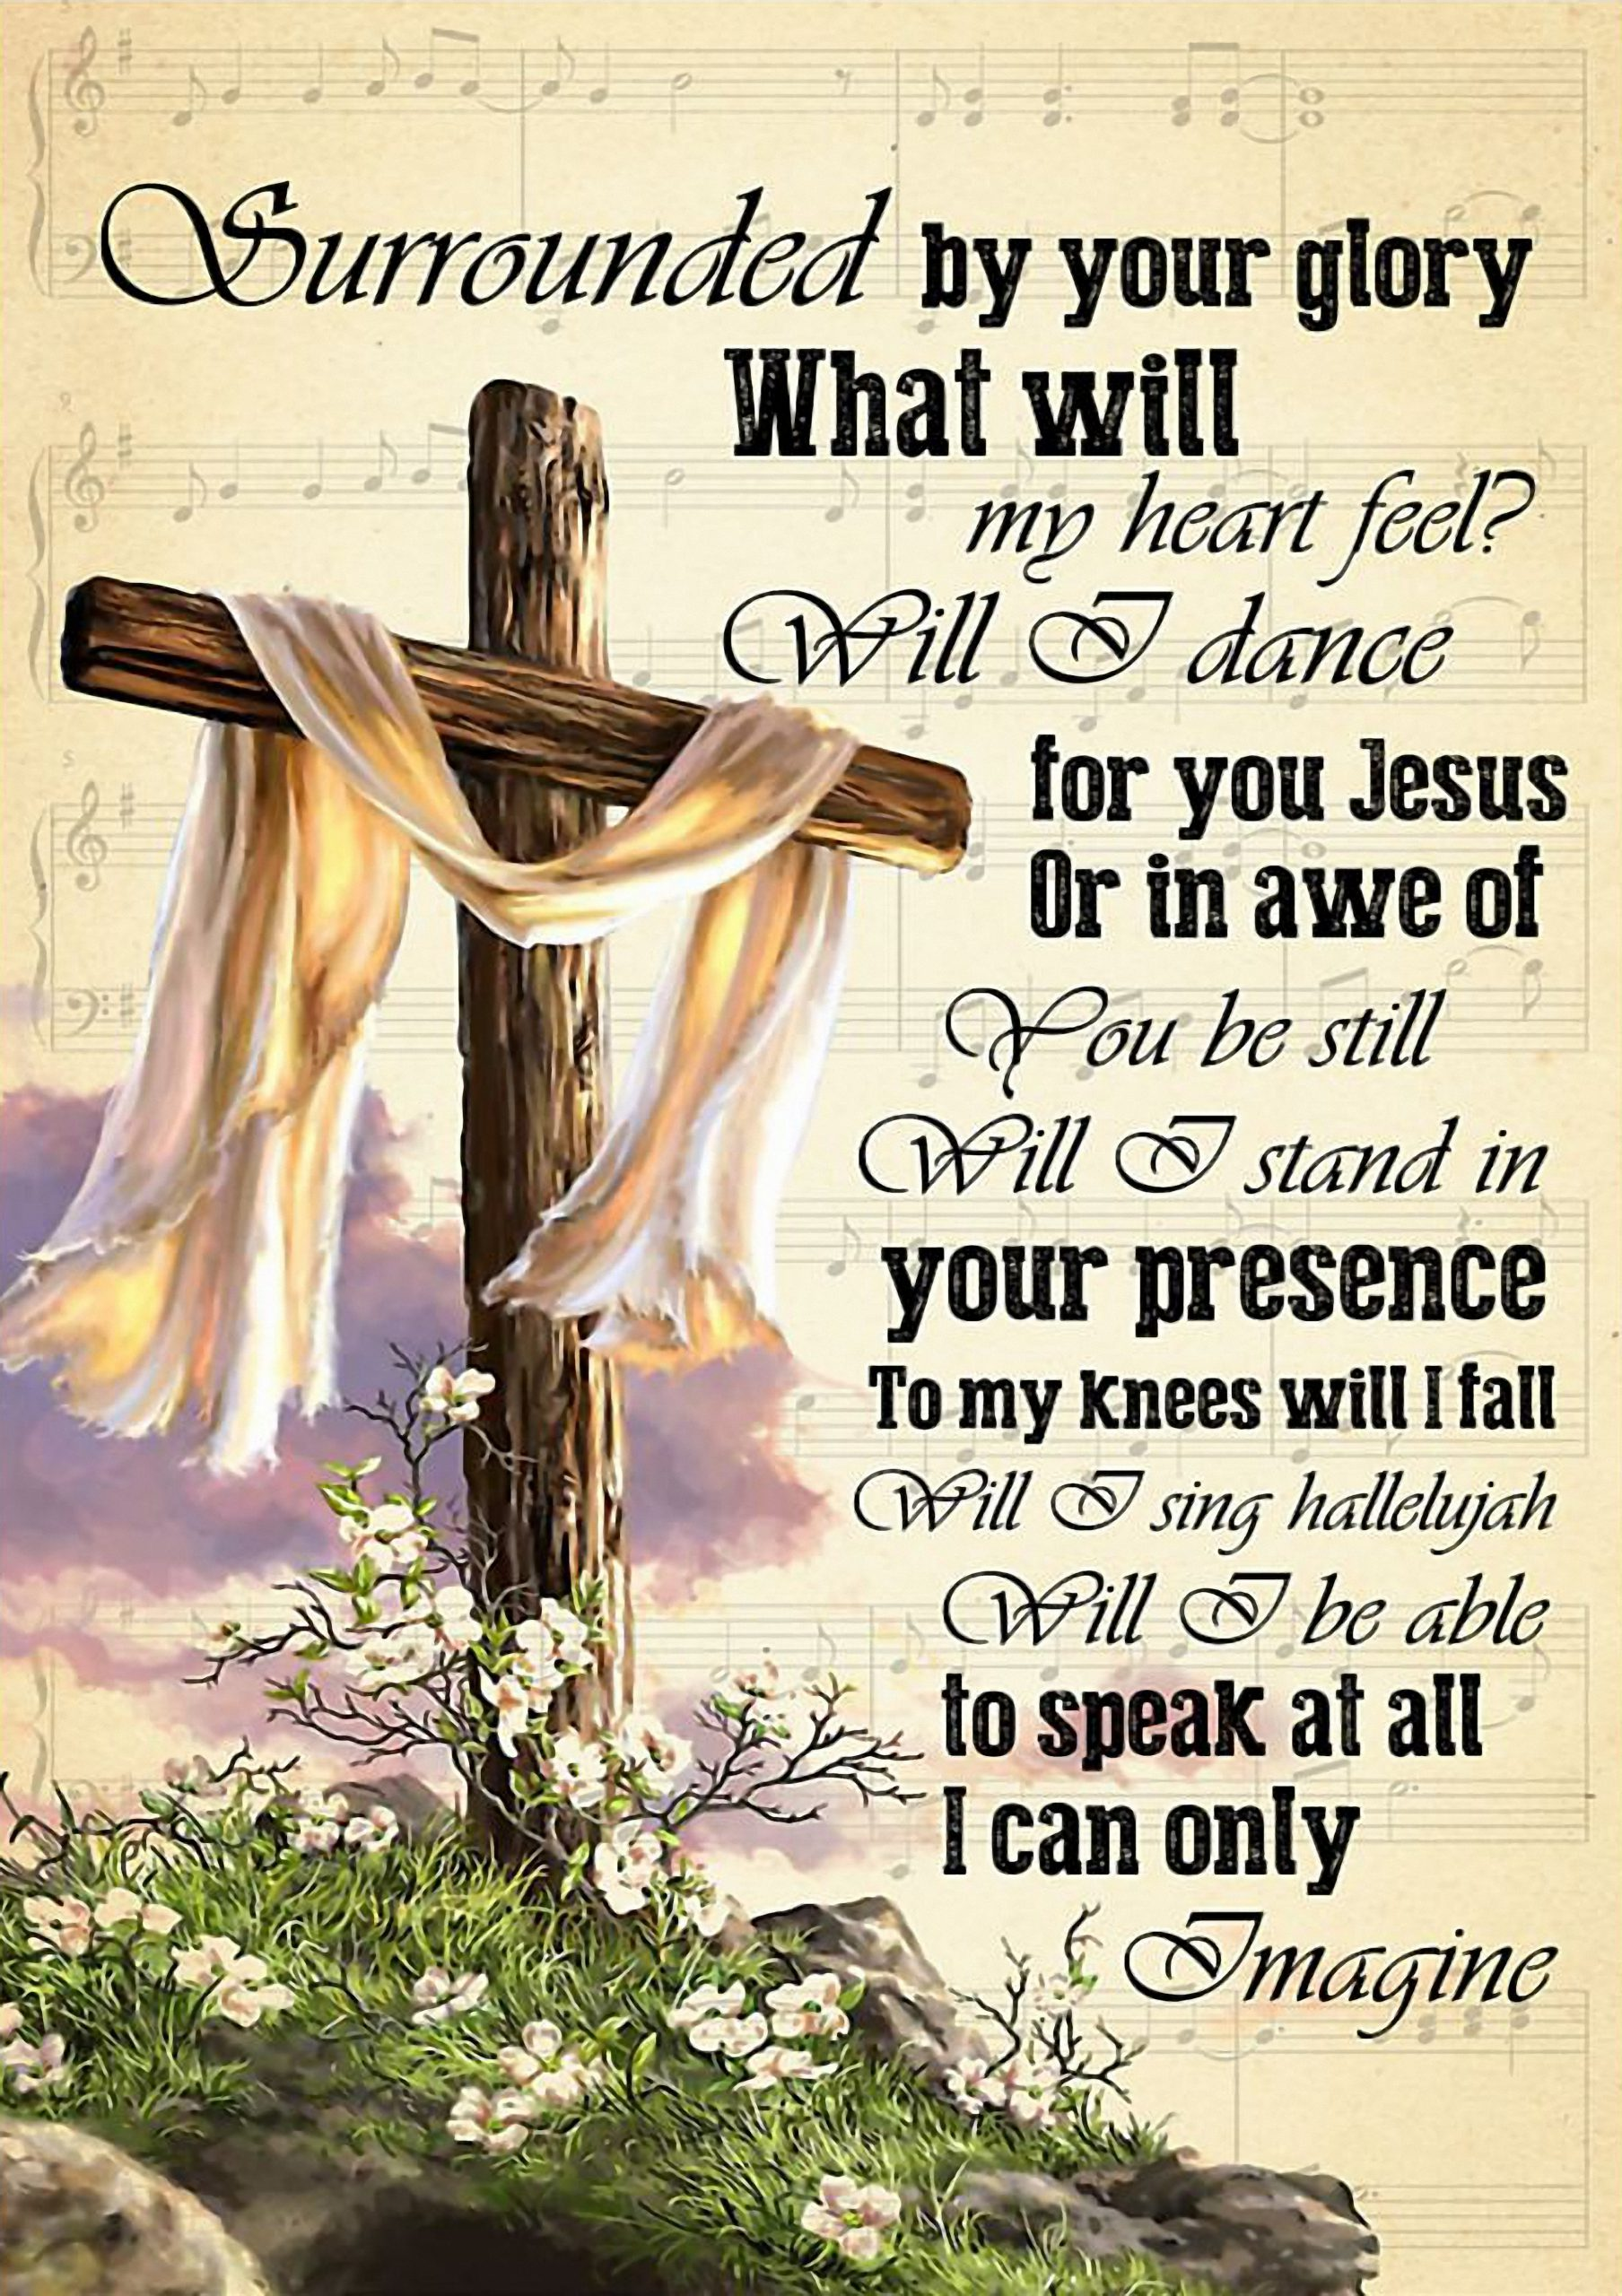 Jesus Surrounded by your glory what will my heart feel poster